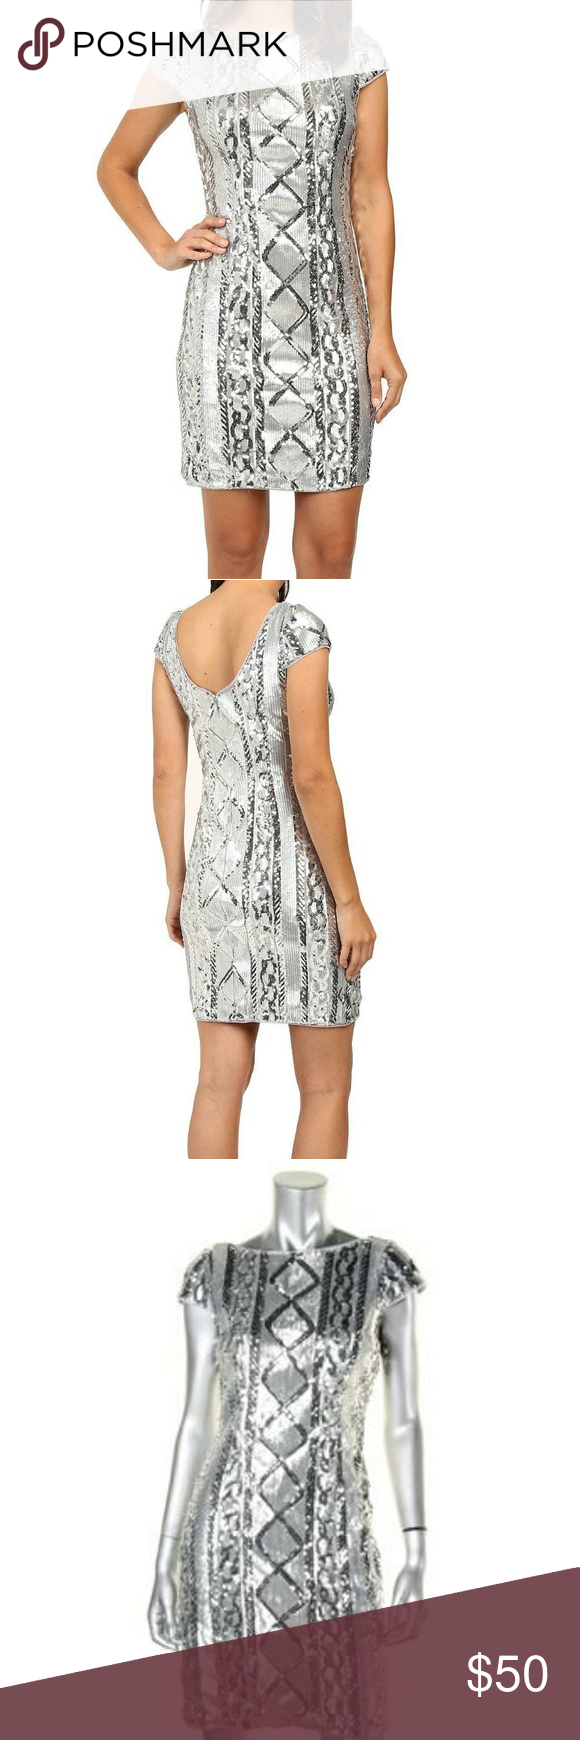 Adrianna papell sequin bodycon dress quartz sleeve collection guide